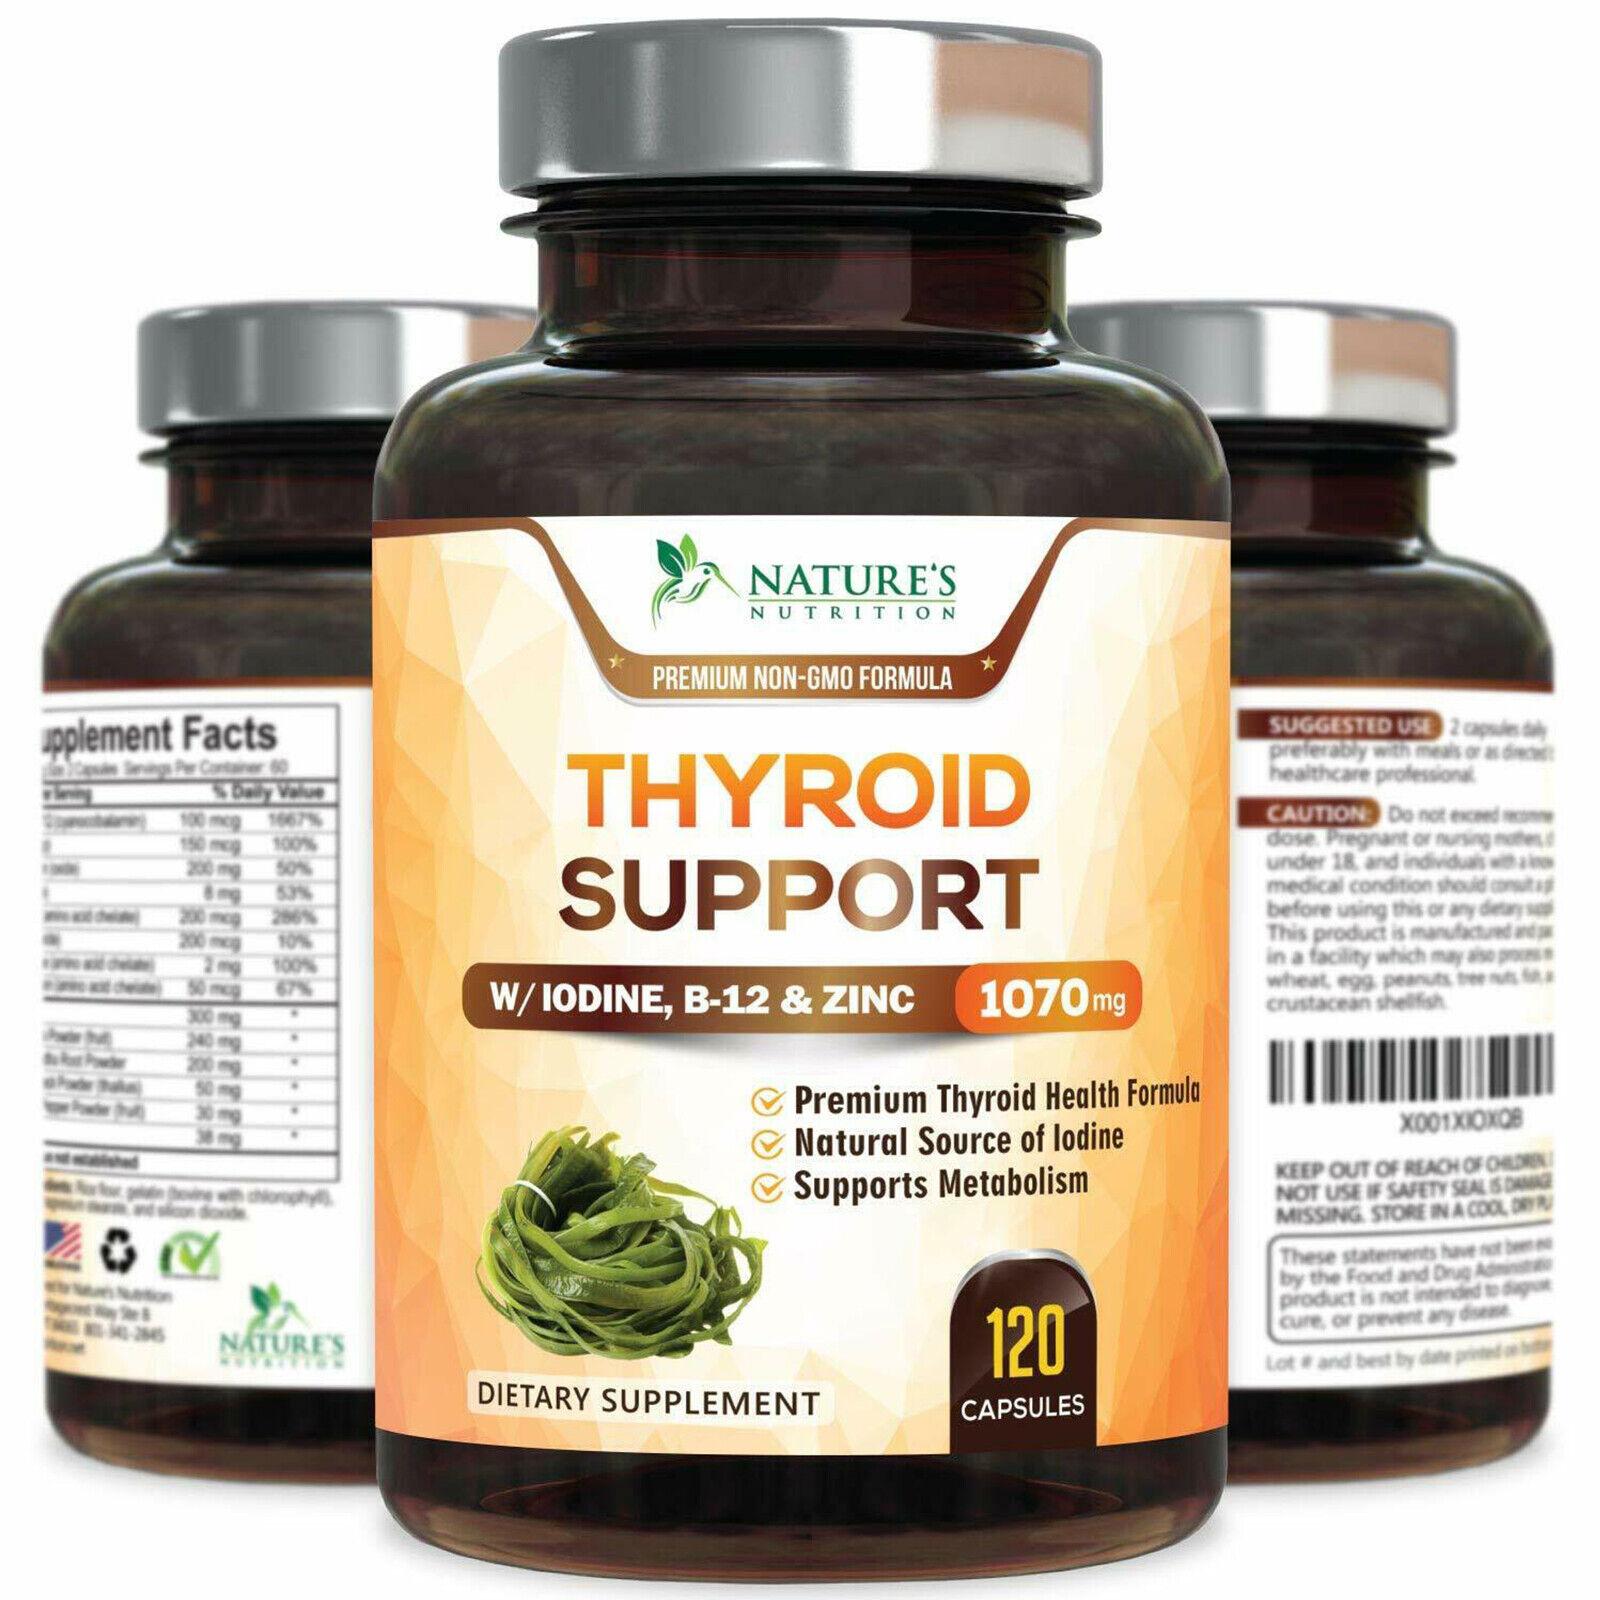 Thyroid Support Supplement 1070mg with Iodine, Vitamin B12, Metabolism, Energy